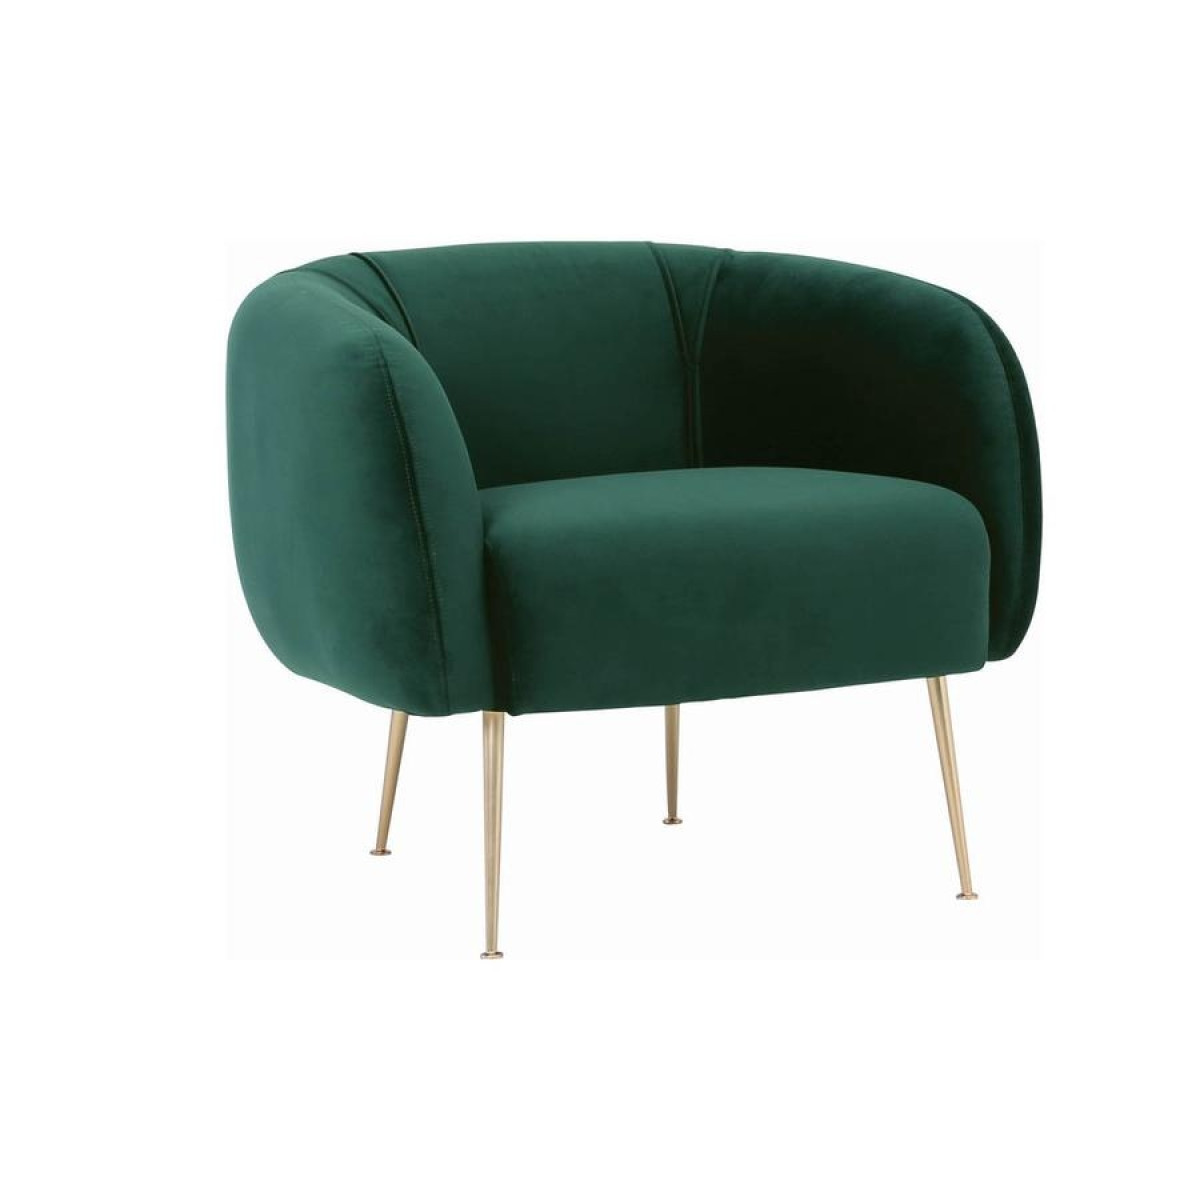 Alero Armchair With Gold-Plated Leg, Dark Green